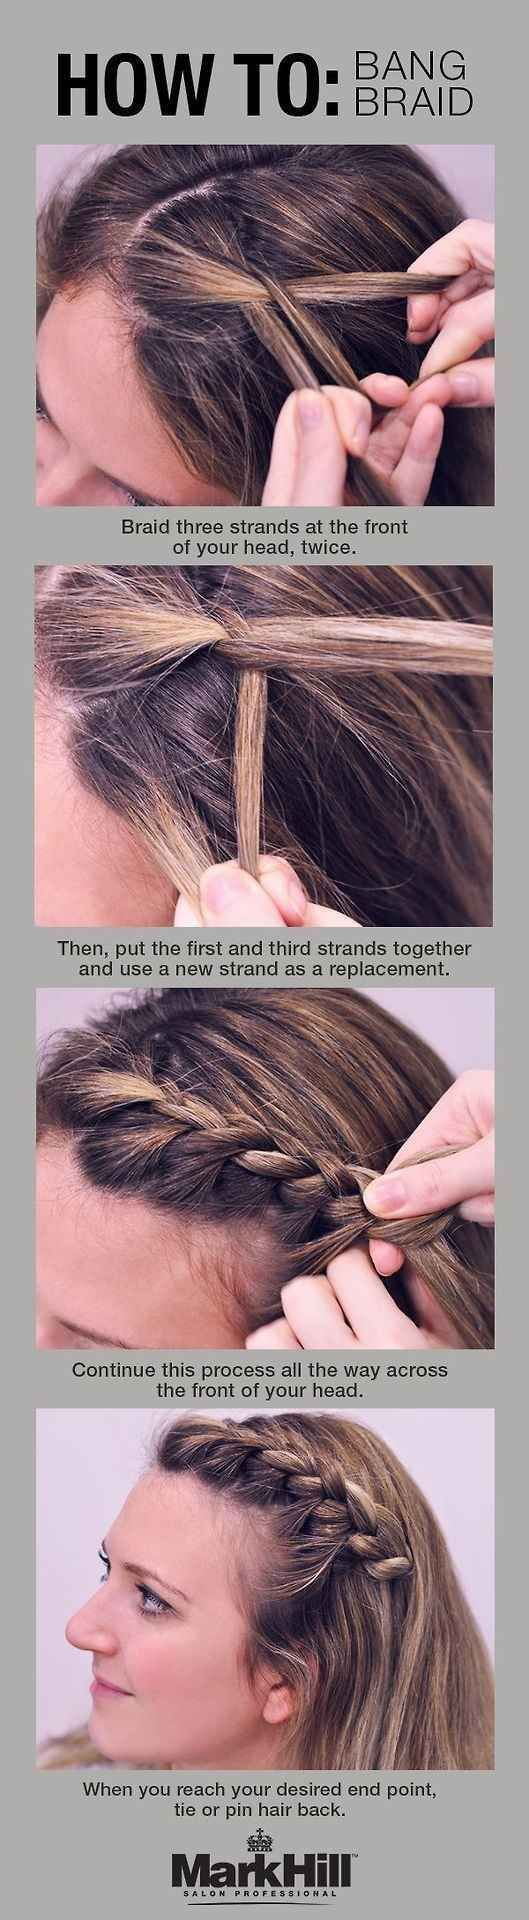 The bang braid is your solution to keeping annoying mid-level bangs off your face. | 18 Ingenious Hair Hacks For The Gym: